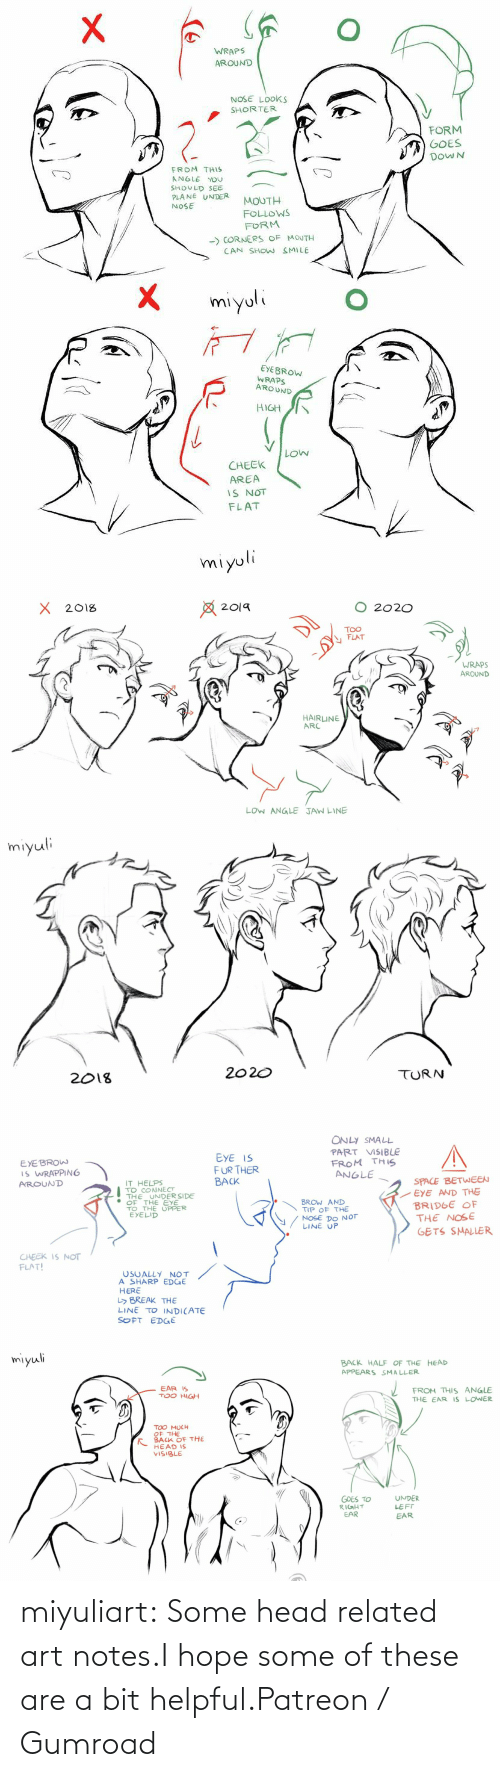 notes: miyuliart: Some head related art notes.I hope some of these are a bit helpful.Patreon / Gumroad